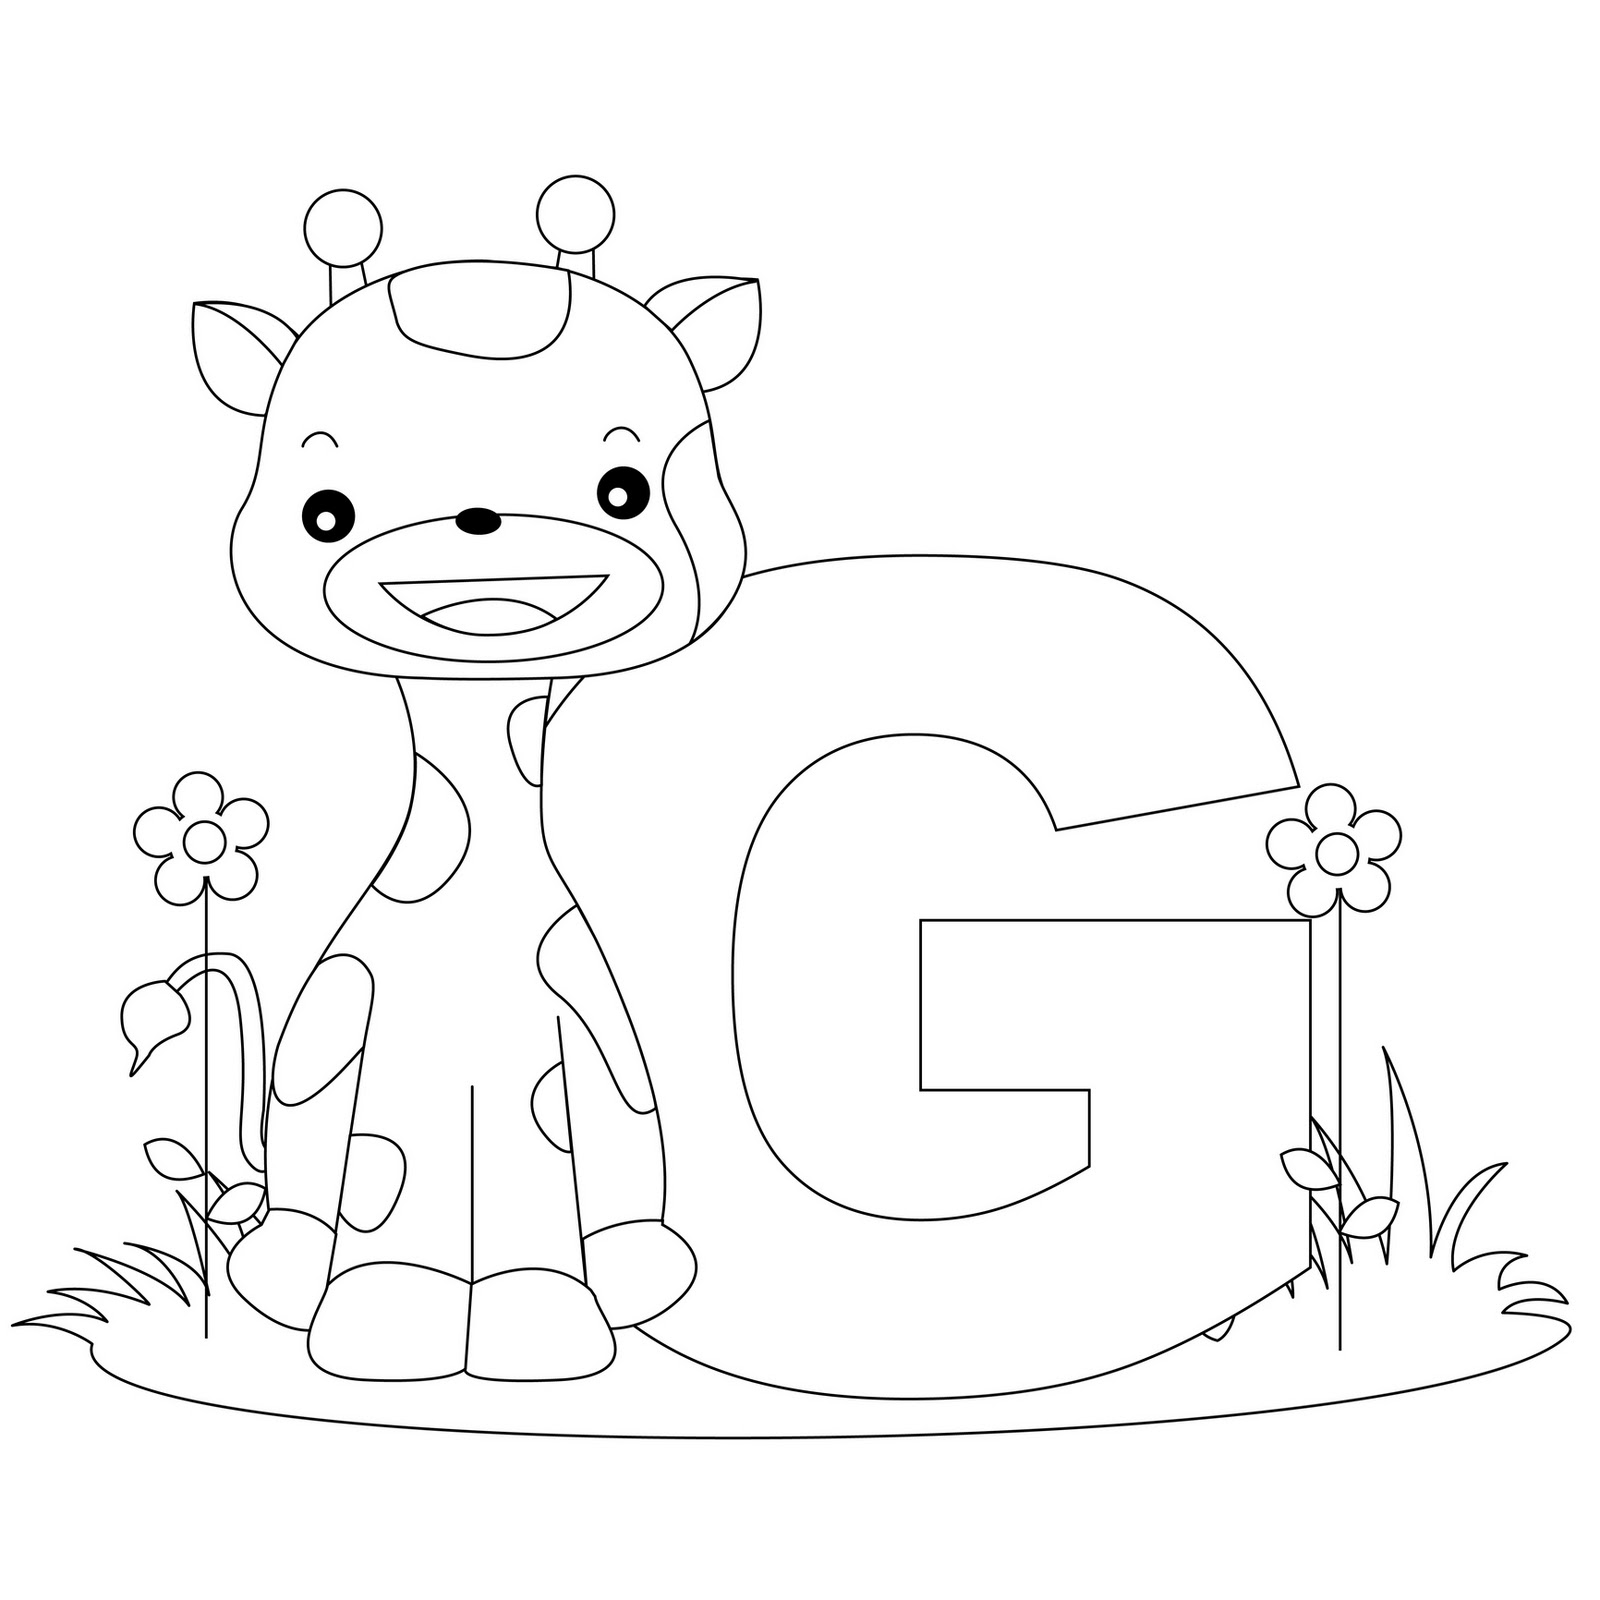 6 Images of Letter G Printables Preschoolers